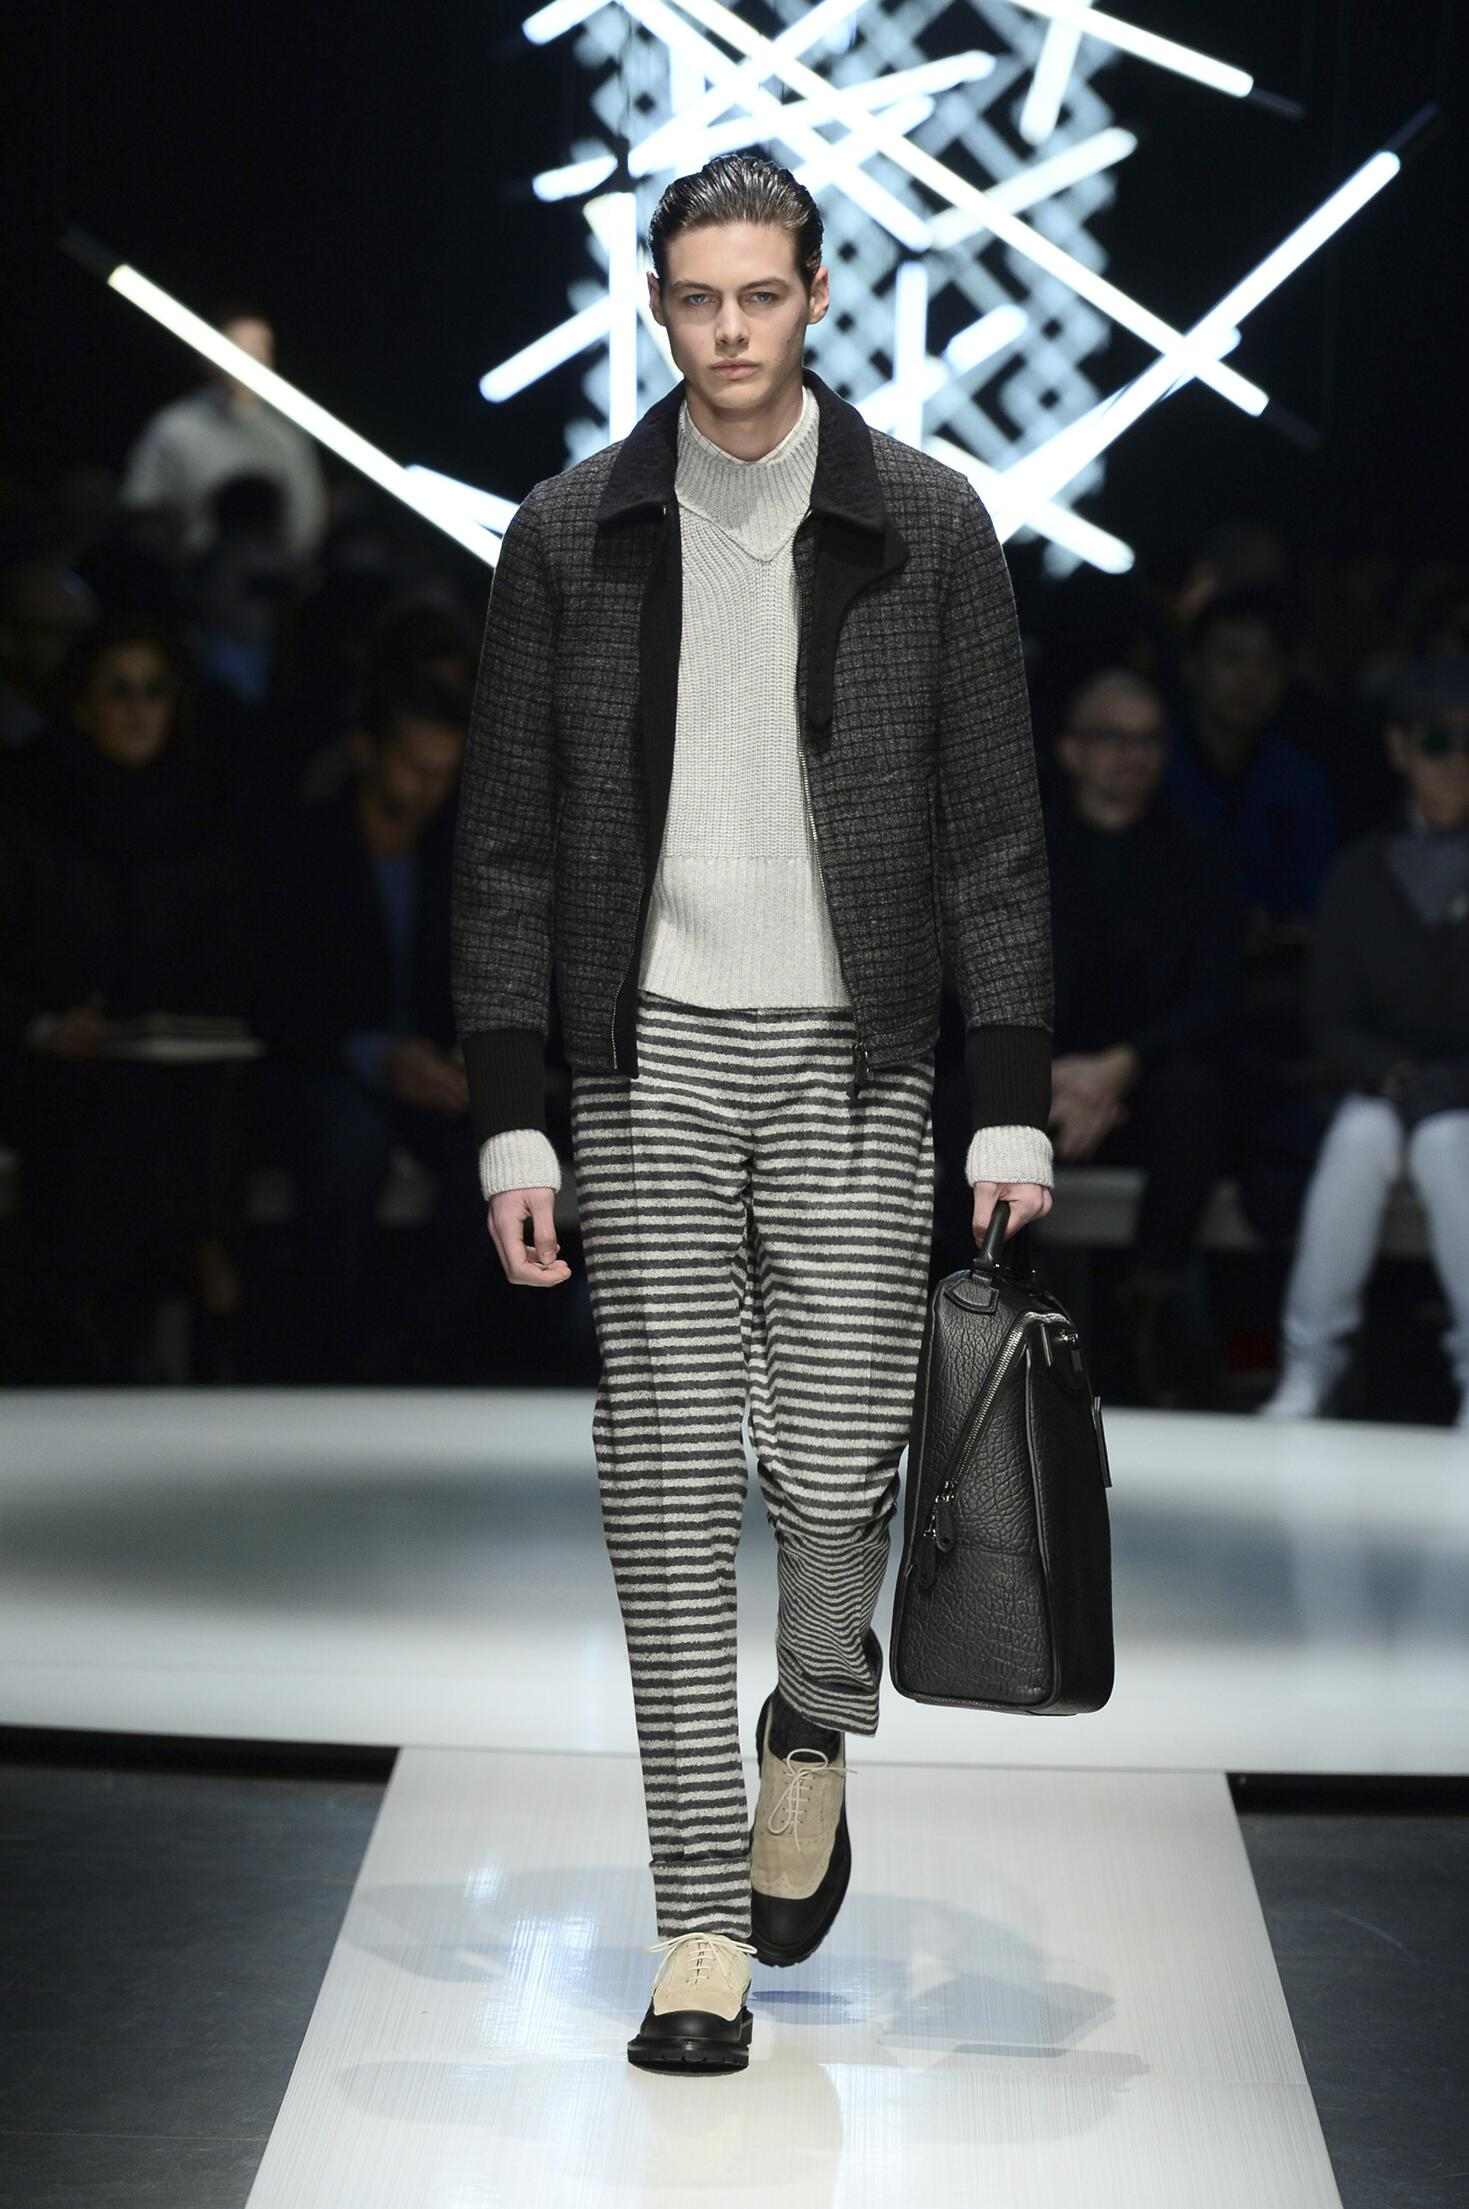 Fall Winter 2015 16 Fashion Men's Collection Canali